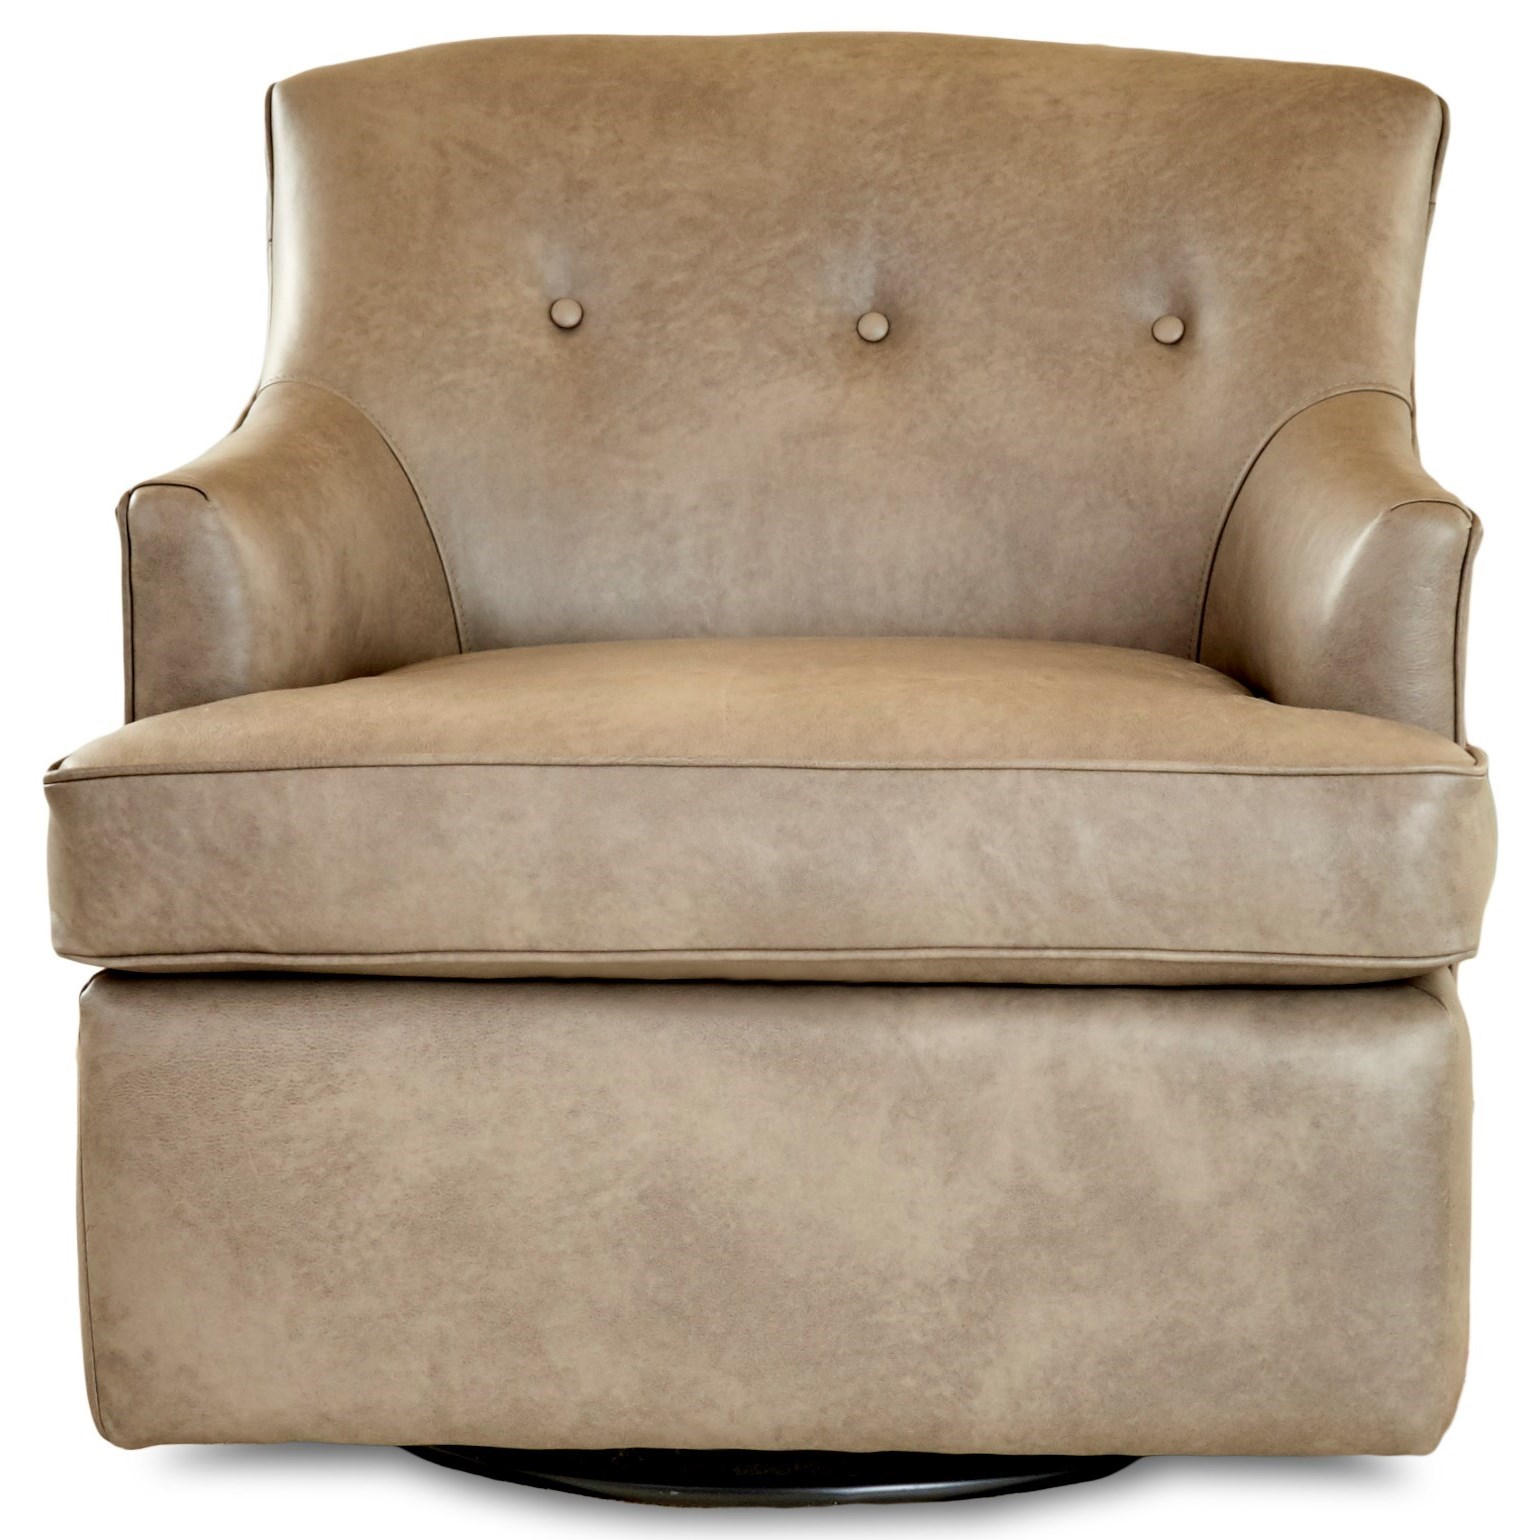 Elizabeth Swivel Glider Chair by Klaussner at Godby Home Furnishings